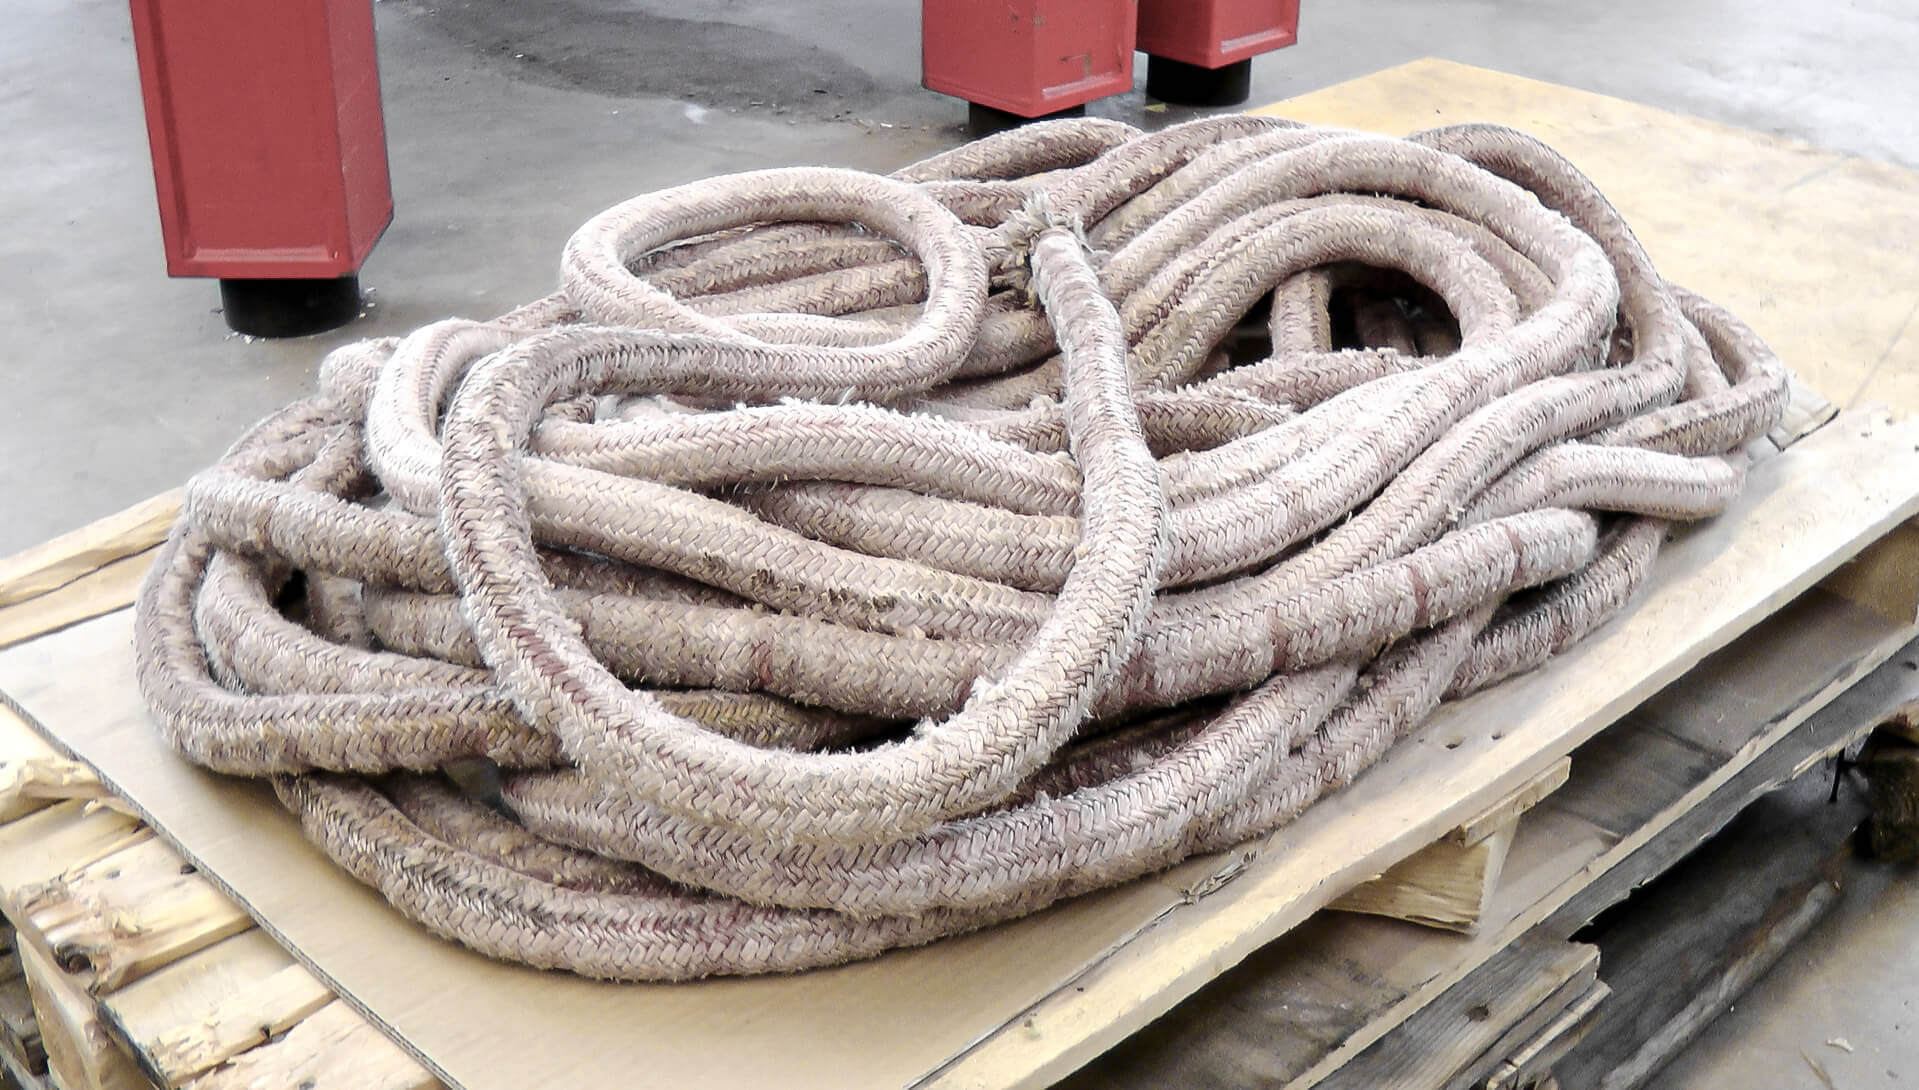 Plastic ropes can be recycled after the shredding process